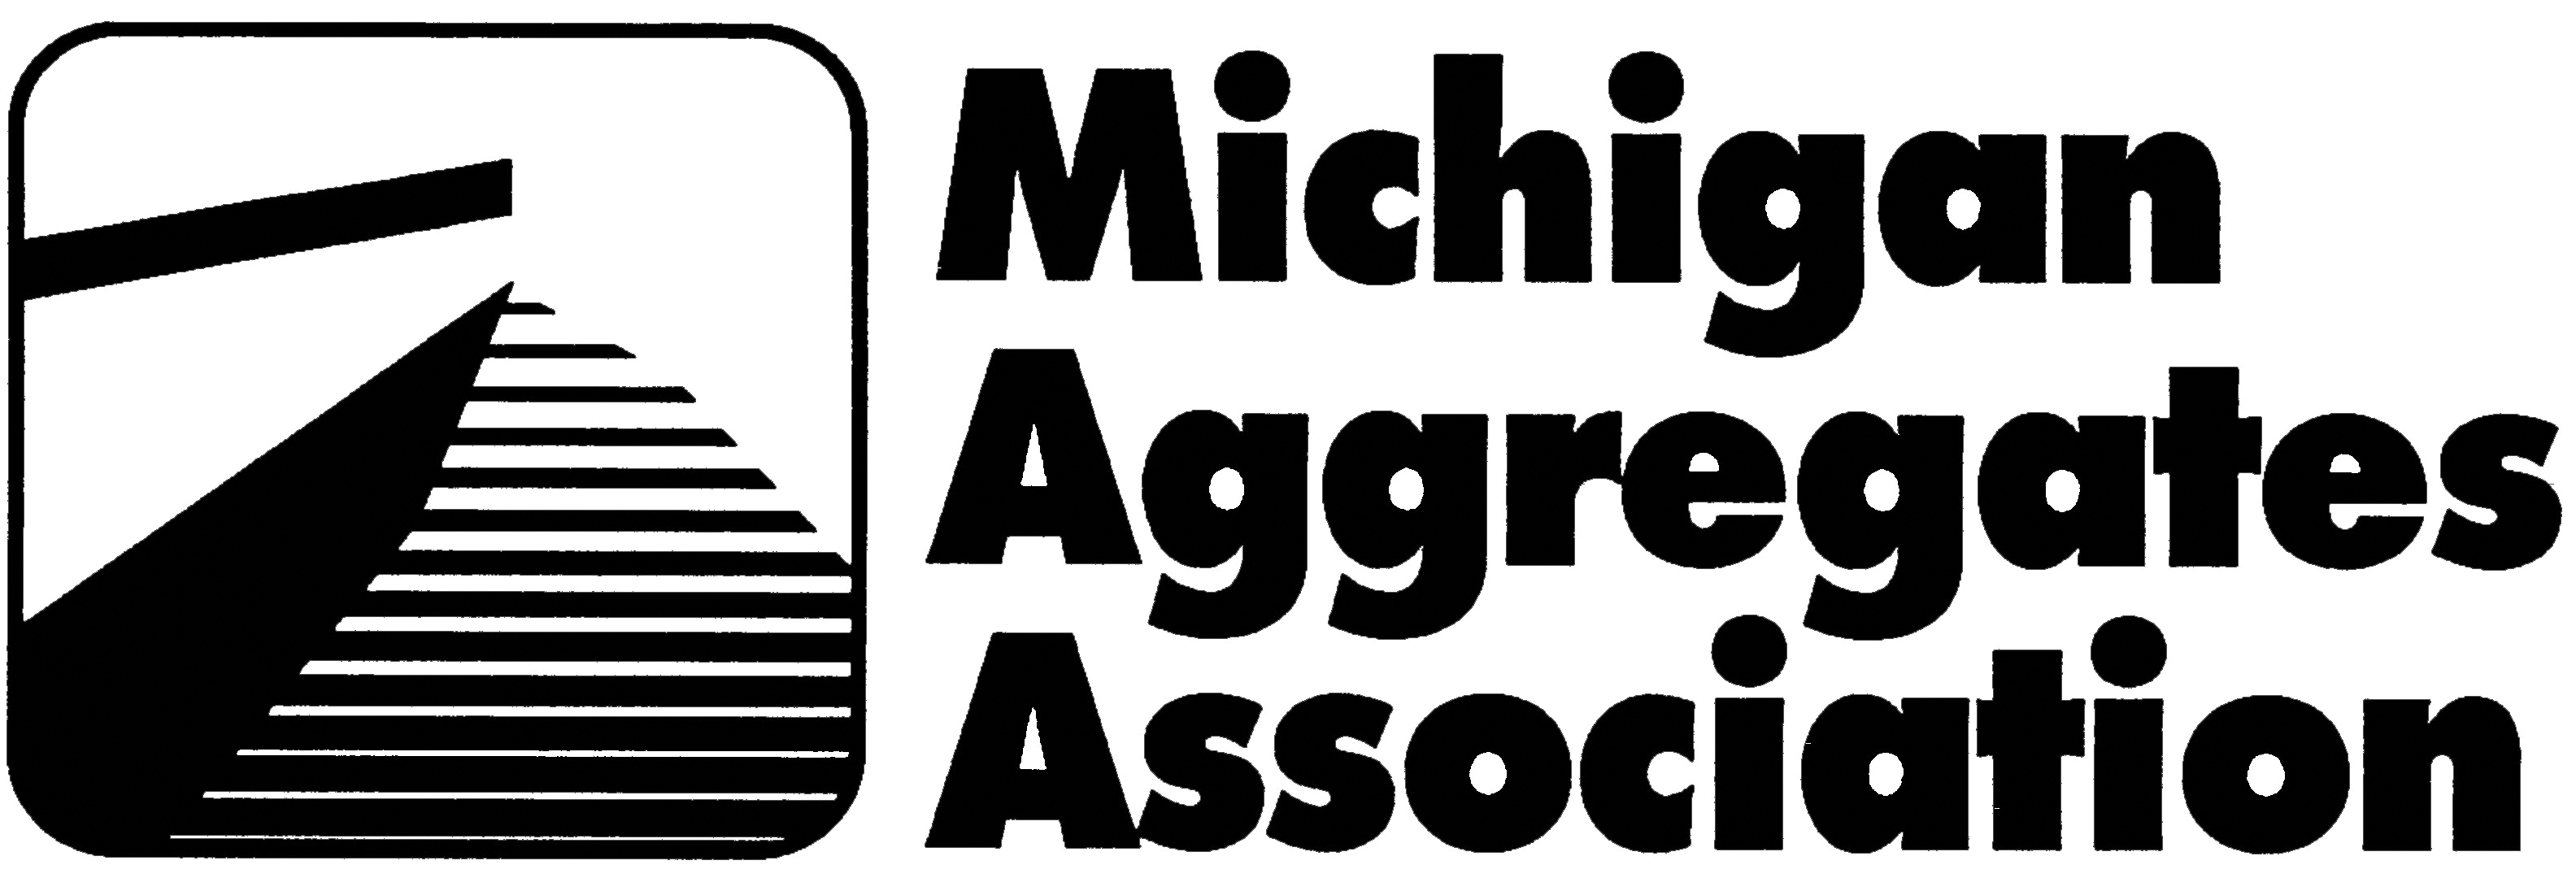 Michigan Aggregates Association logo